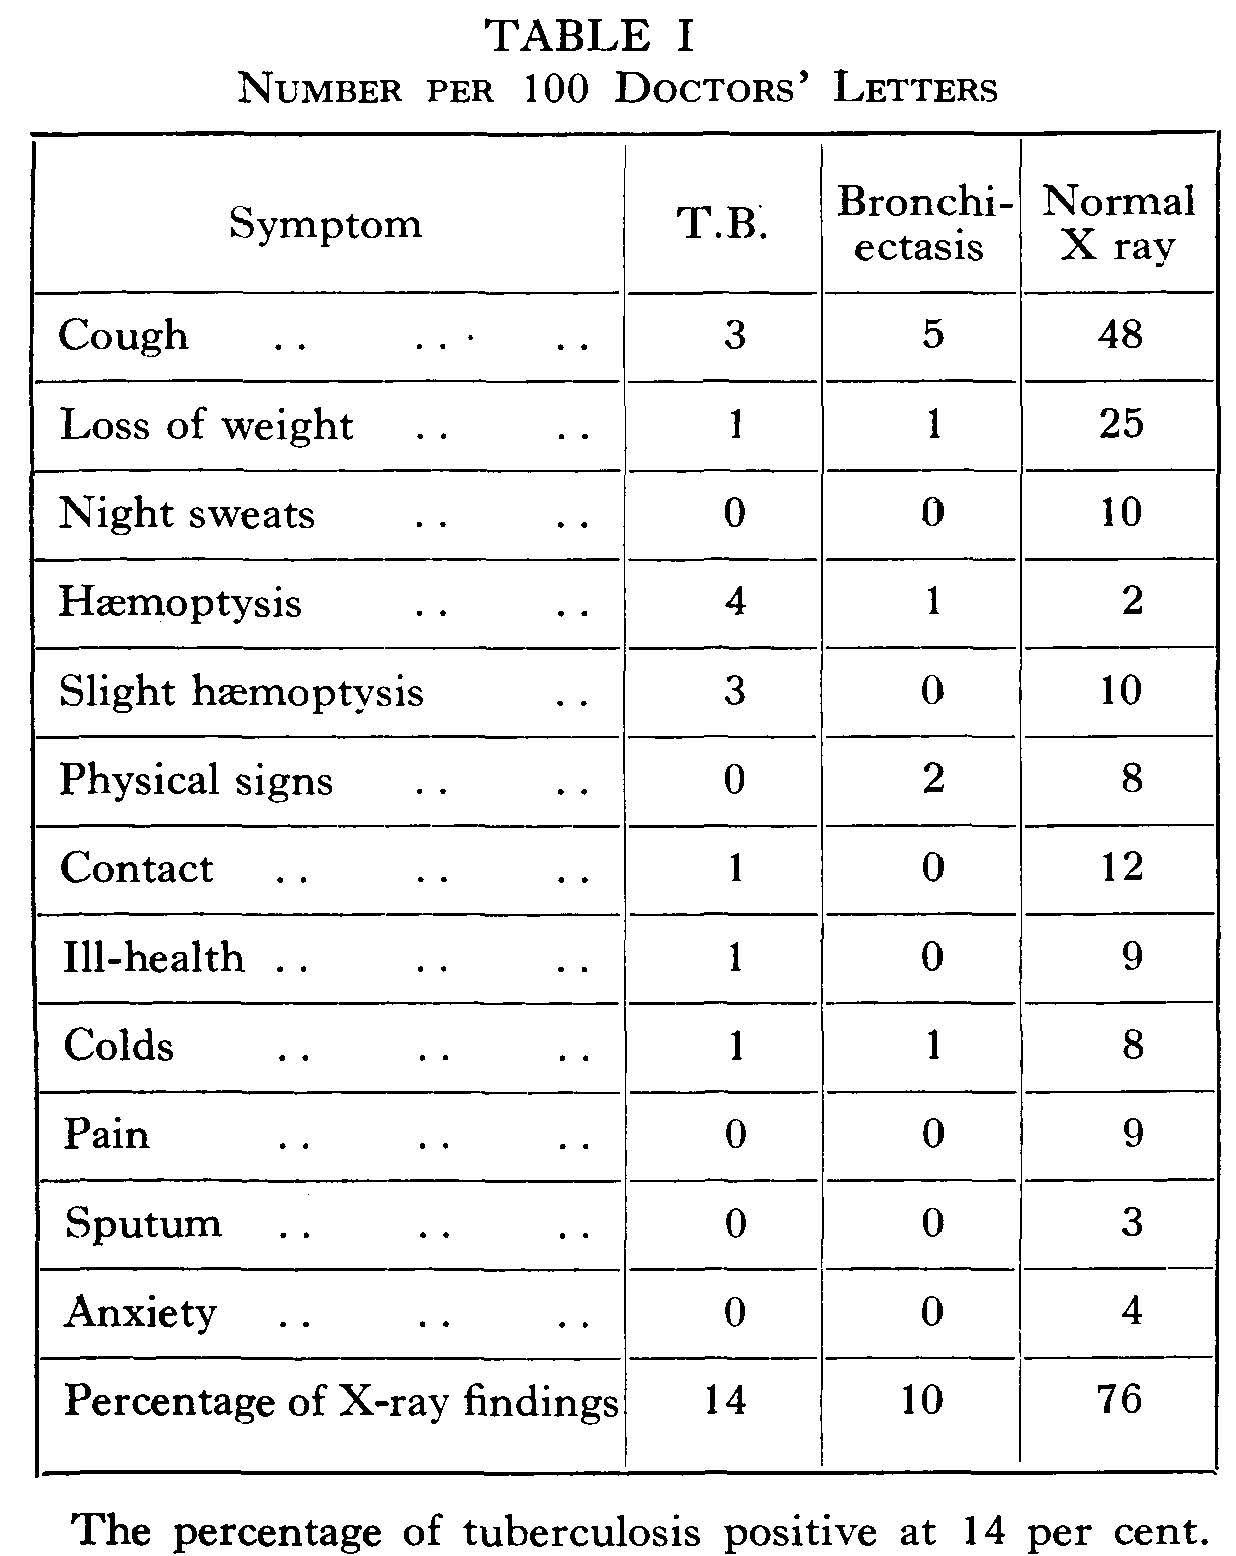 Table showing statistics for tuberculosis, bronchiectasis and normal x-ray